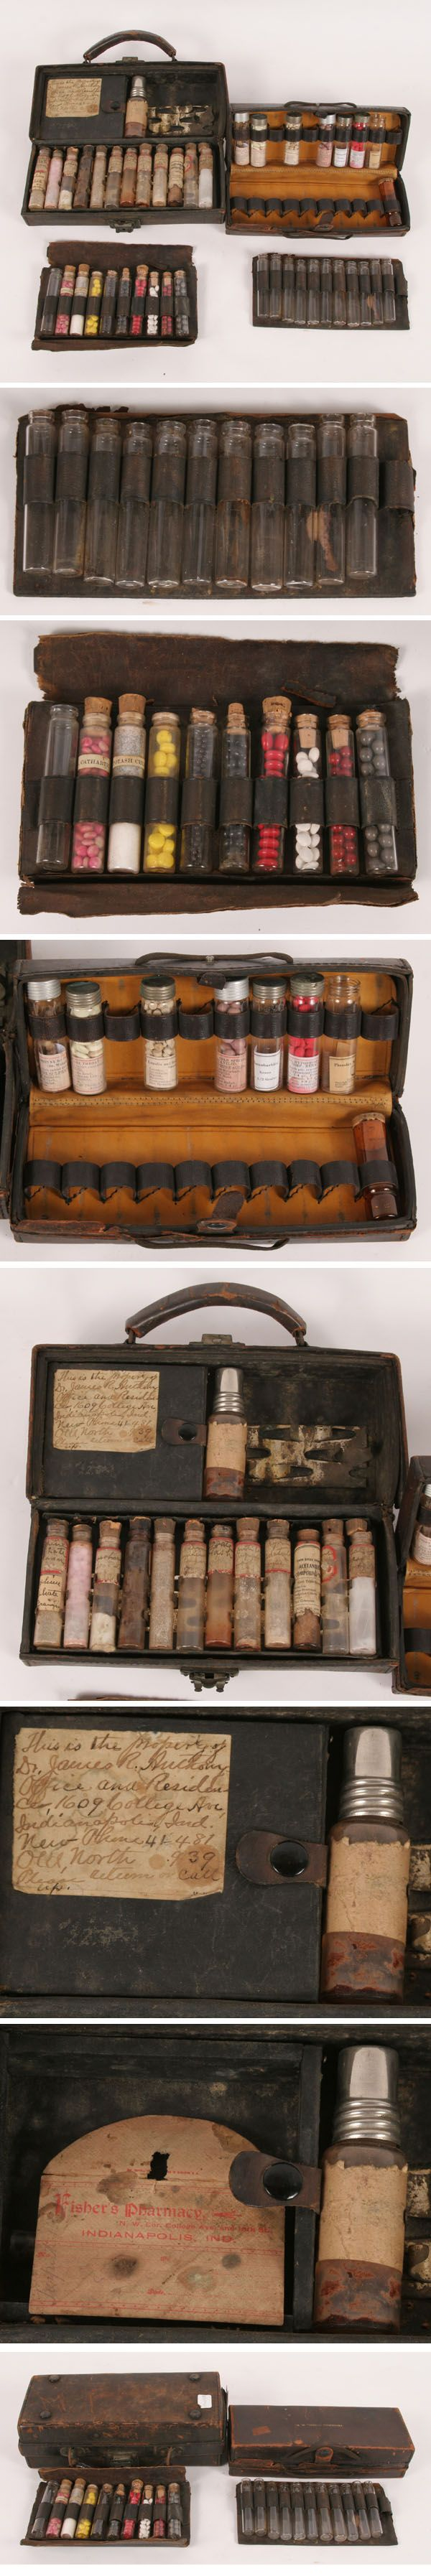 VINTAGE Leather Medical Medicine Case/Bag  Original Vials and Medicine